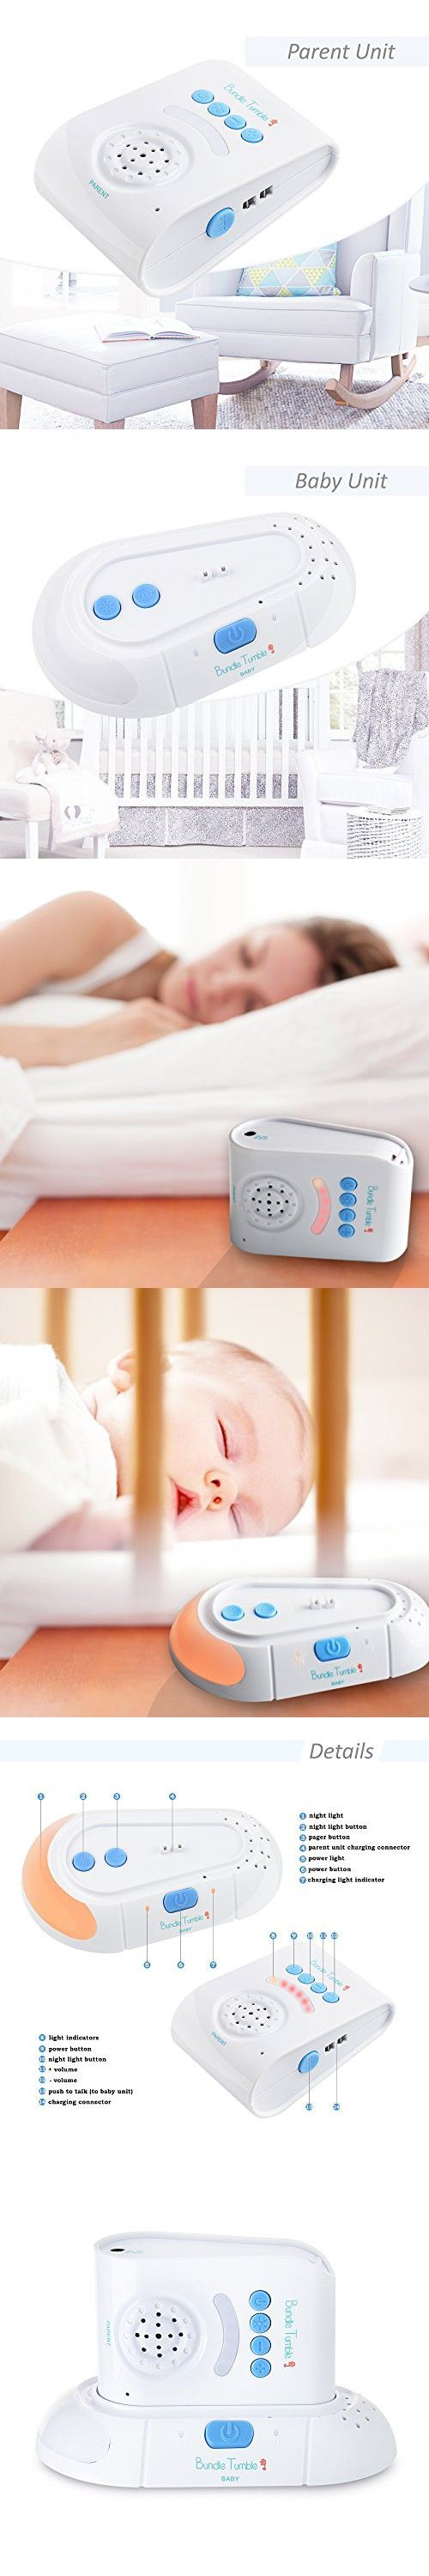 BundleTumble BT05 Safe & Sound Audio Baby Monitor with One Parent Unit - 2.4Ghz Digital Audio Monitor with Convertible Belt Clip For Parent Unit - Includes 2 USB cable & Pair of Rechargeable Batteries